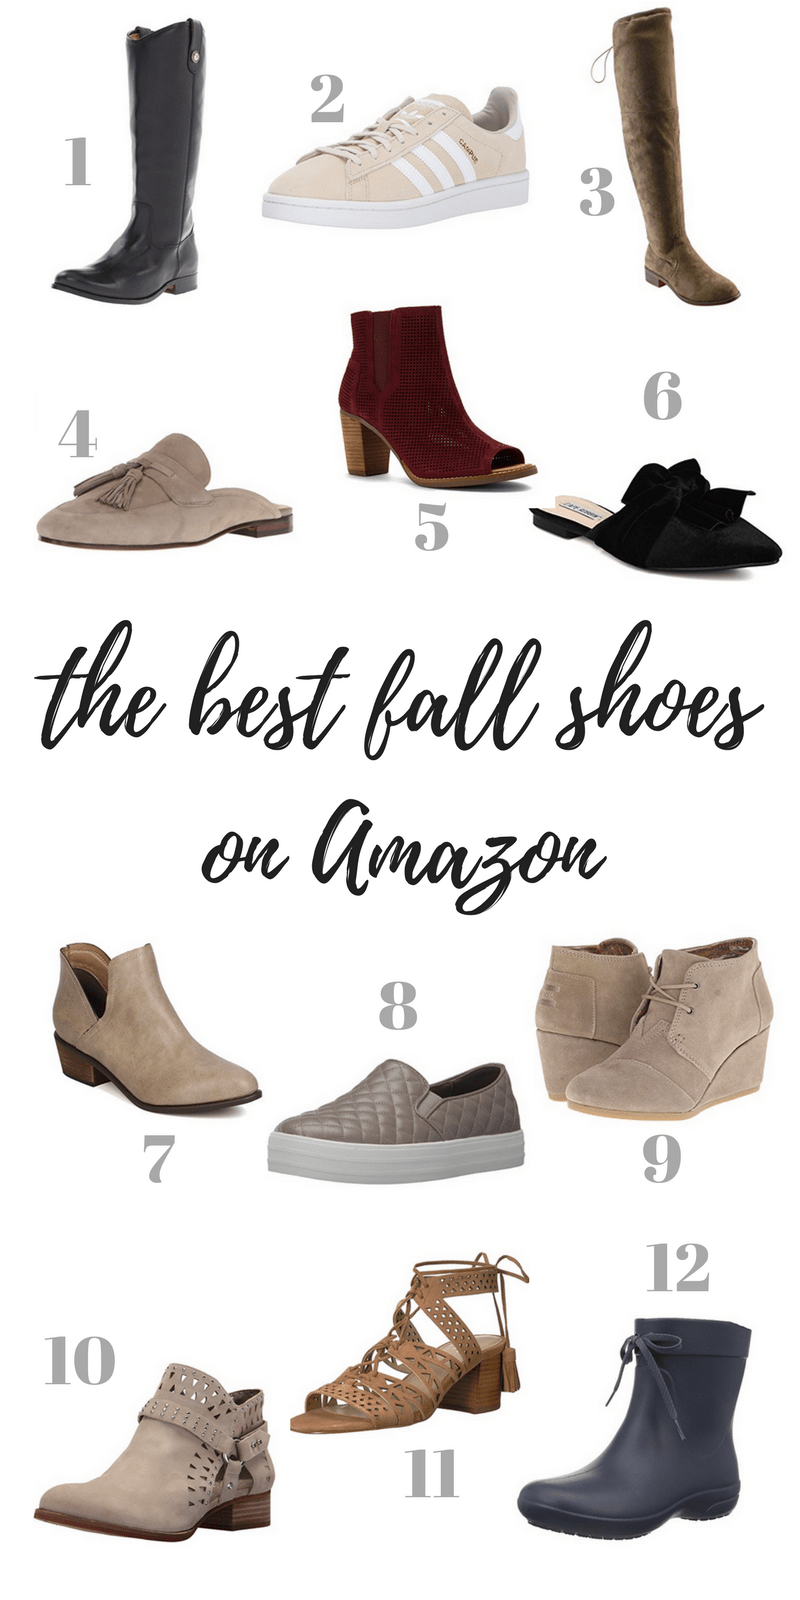 e2a138751c1 The Best Fall Shoes on Amazon - Casual Claire